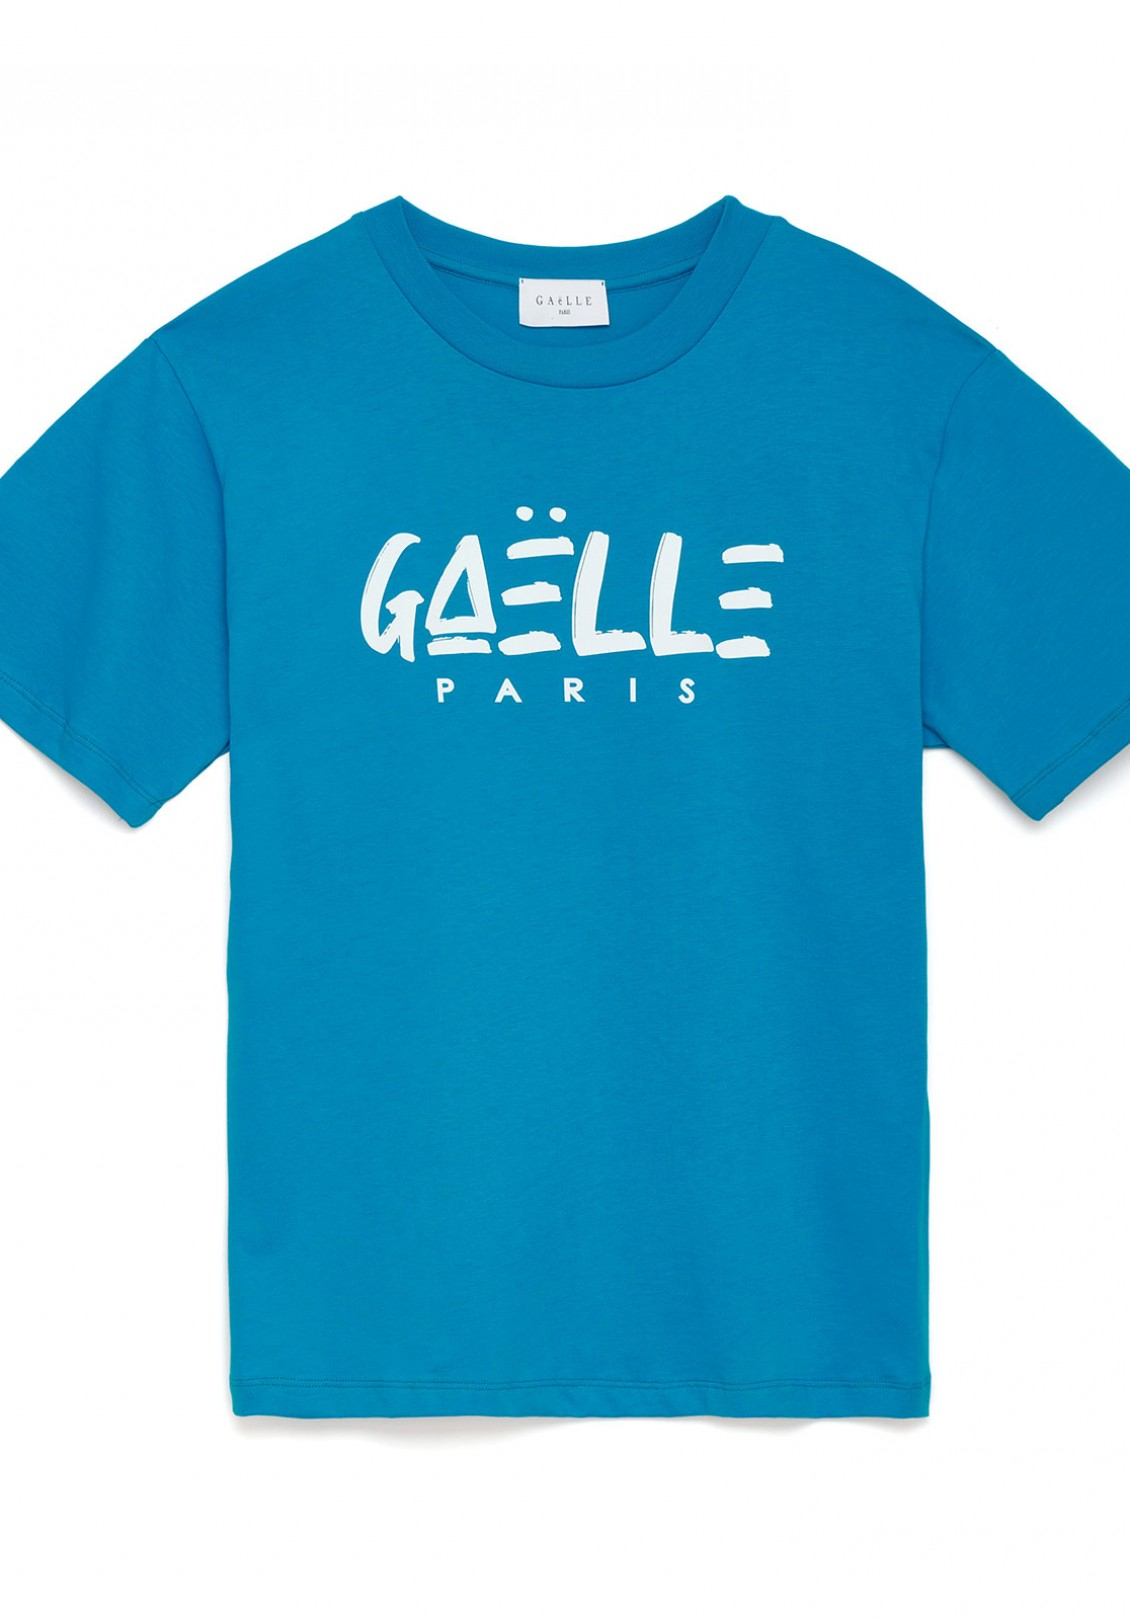 T-shirt turchese con logo gaelle paris